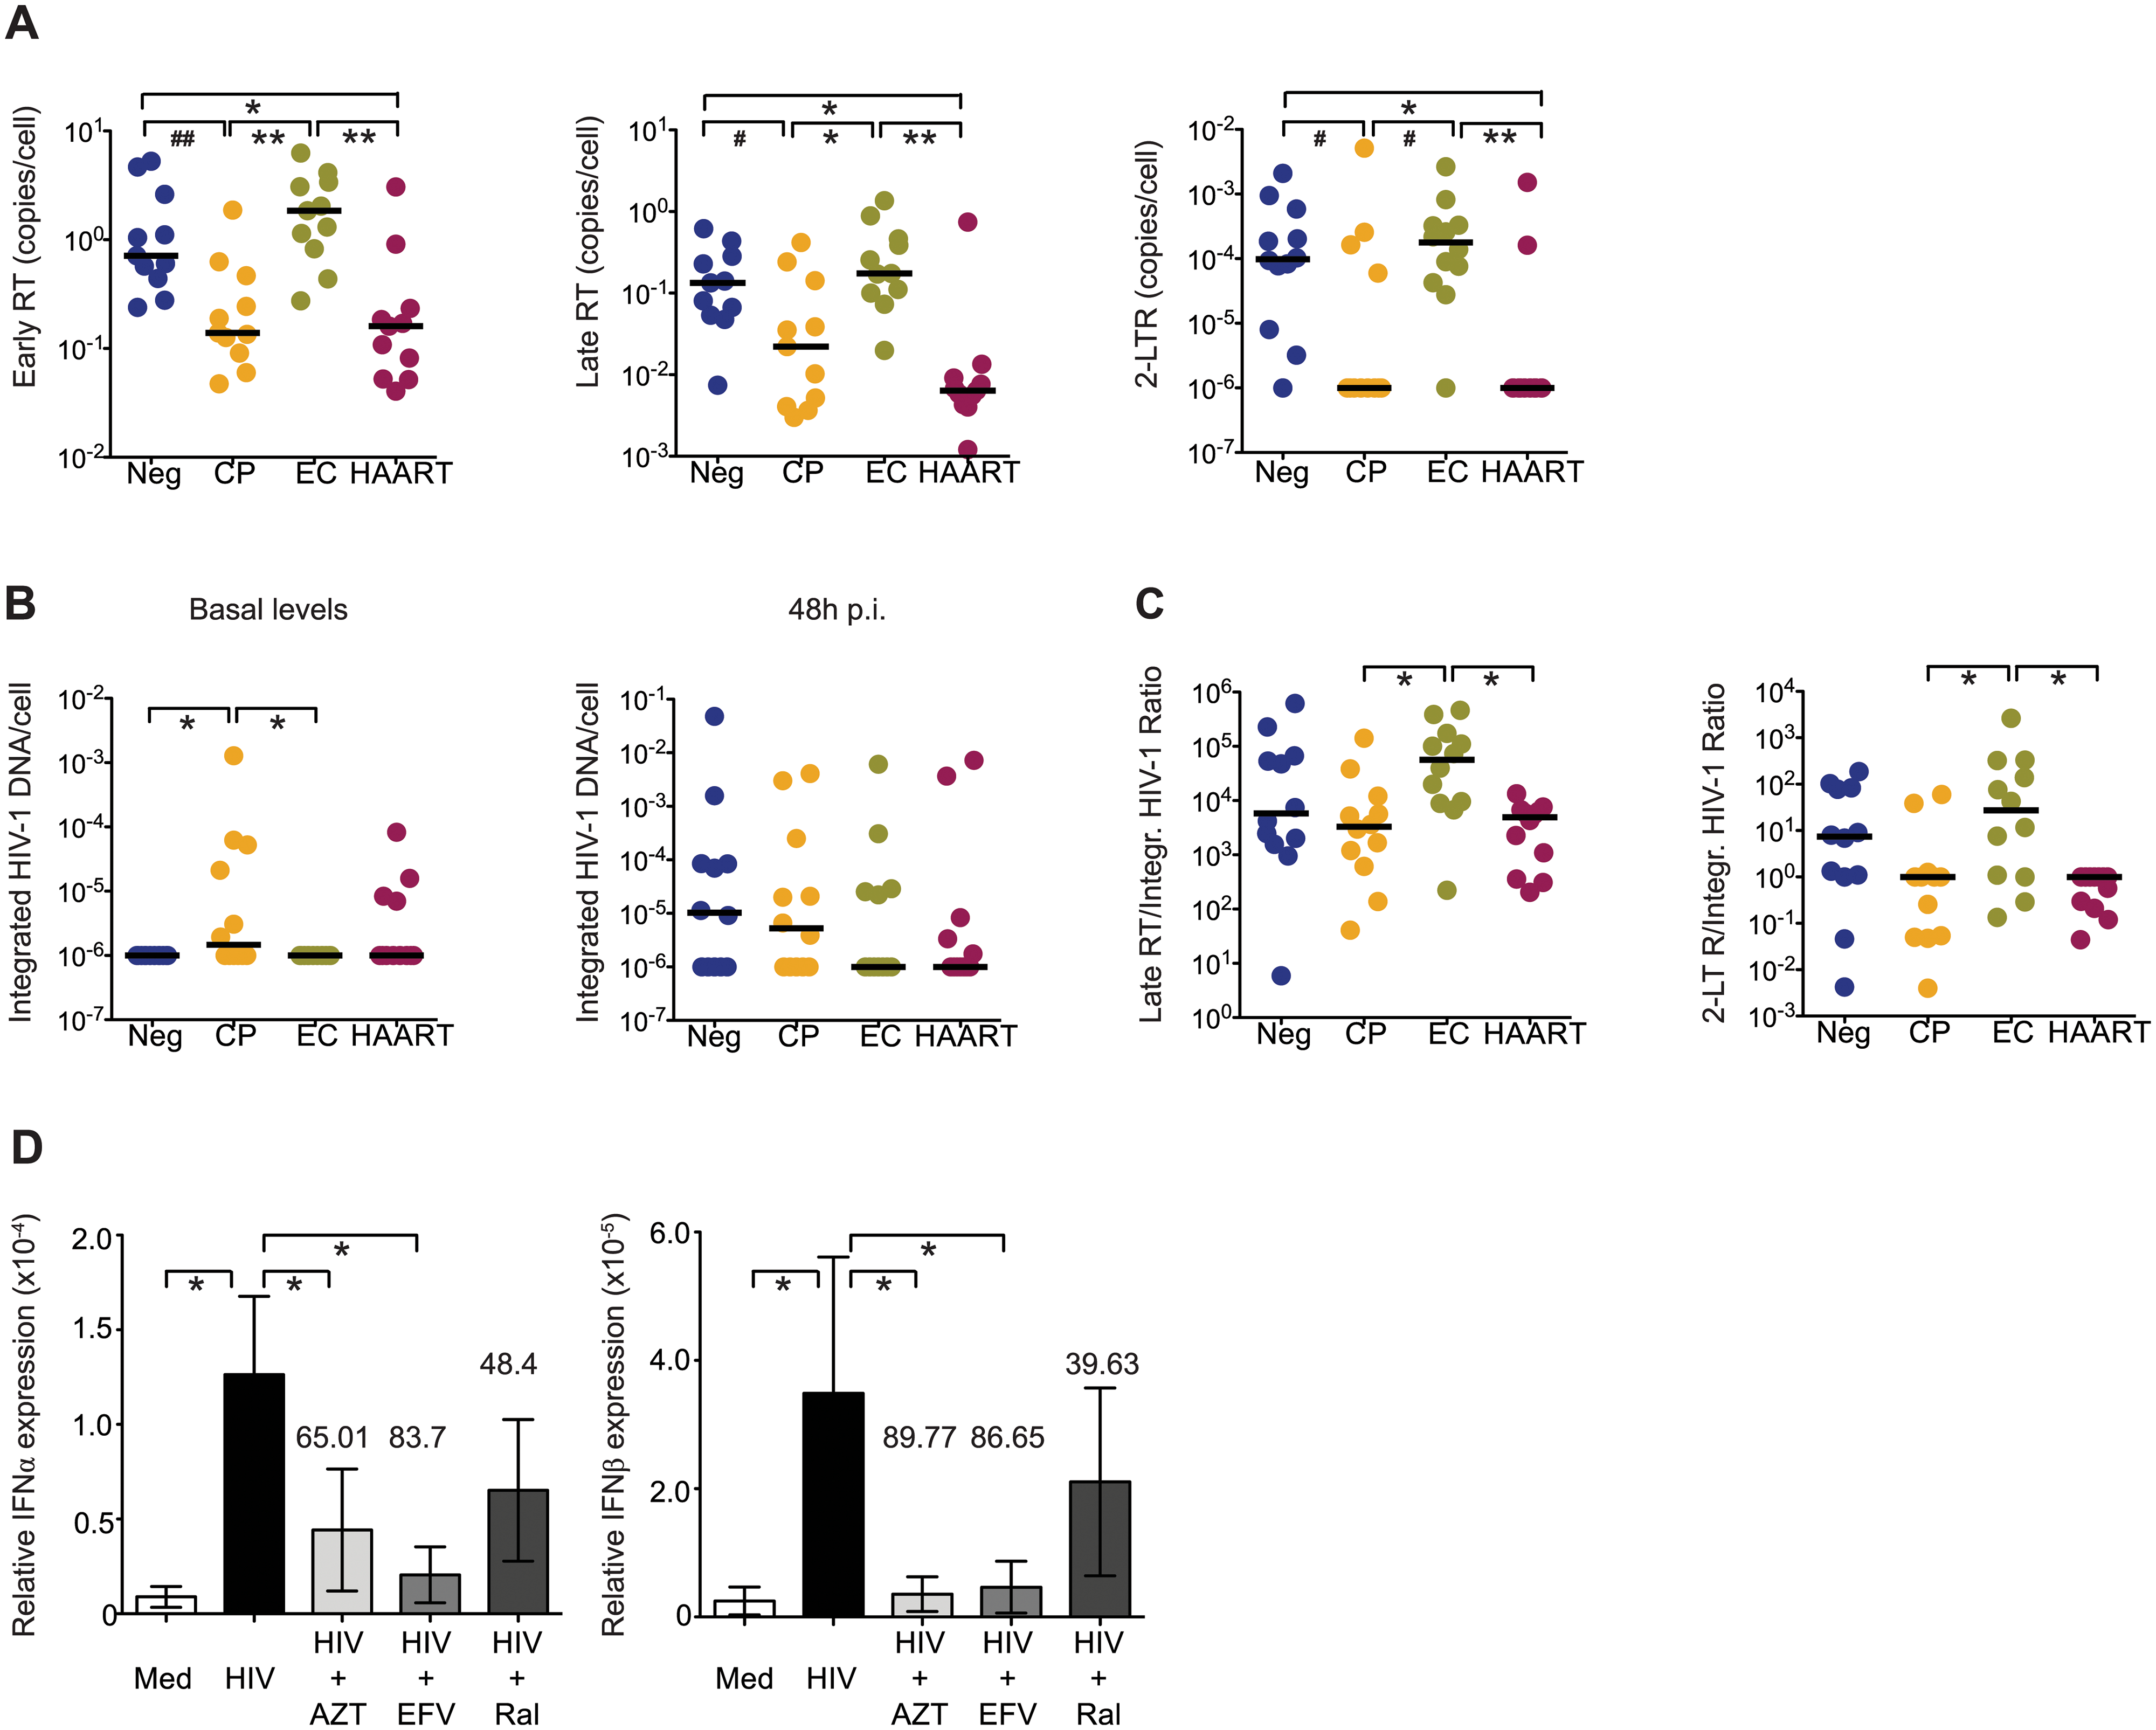 HIV-1 replication patterns in cDCs from EC.